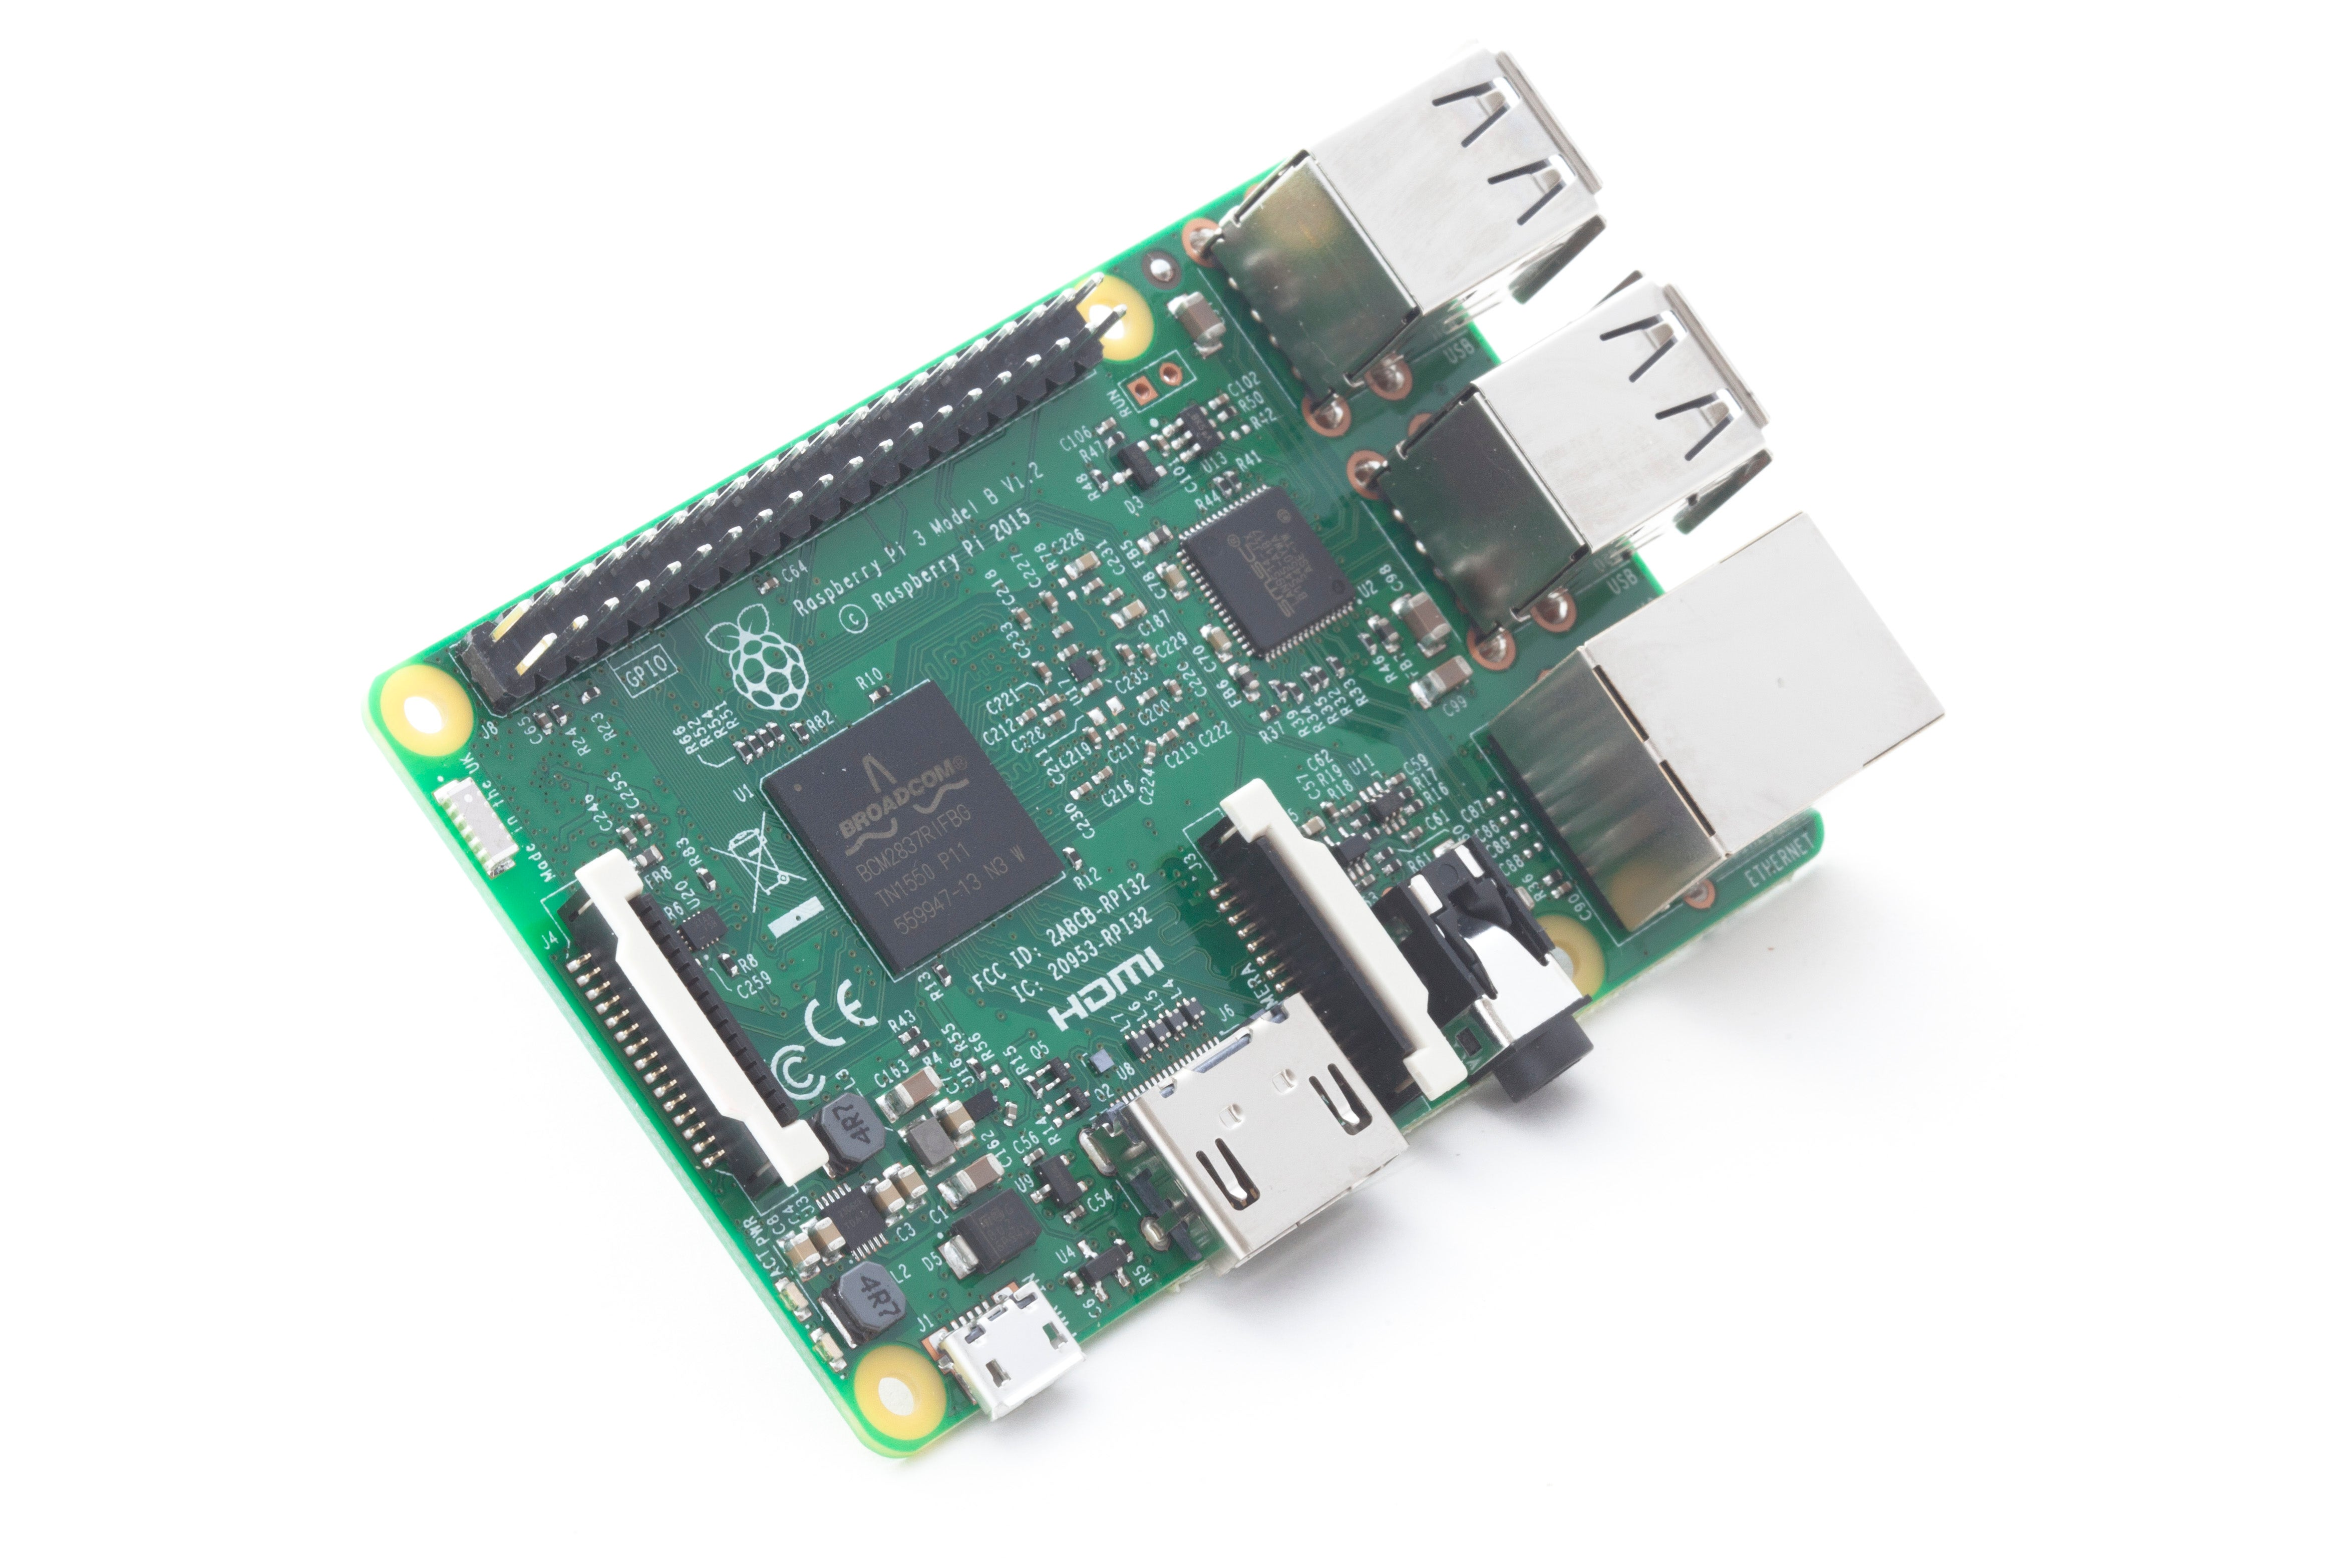 The Raspberry Pi Is Finally Getting Wi-Fi